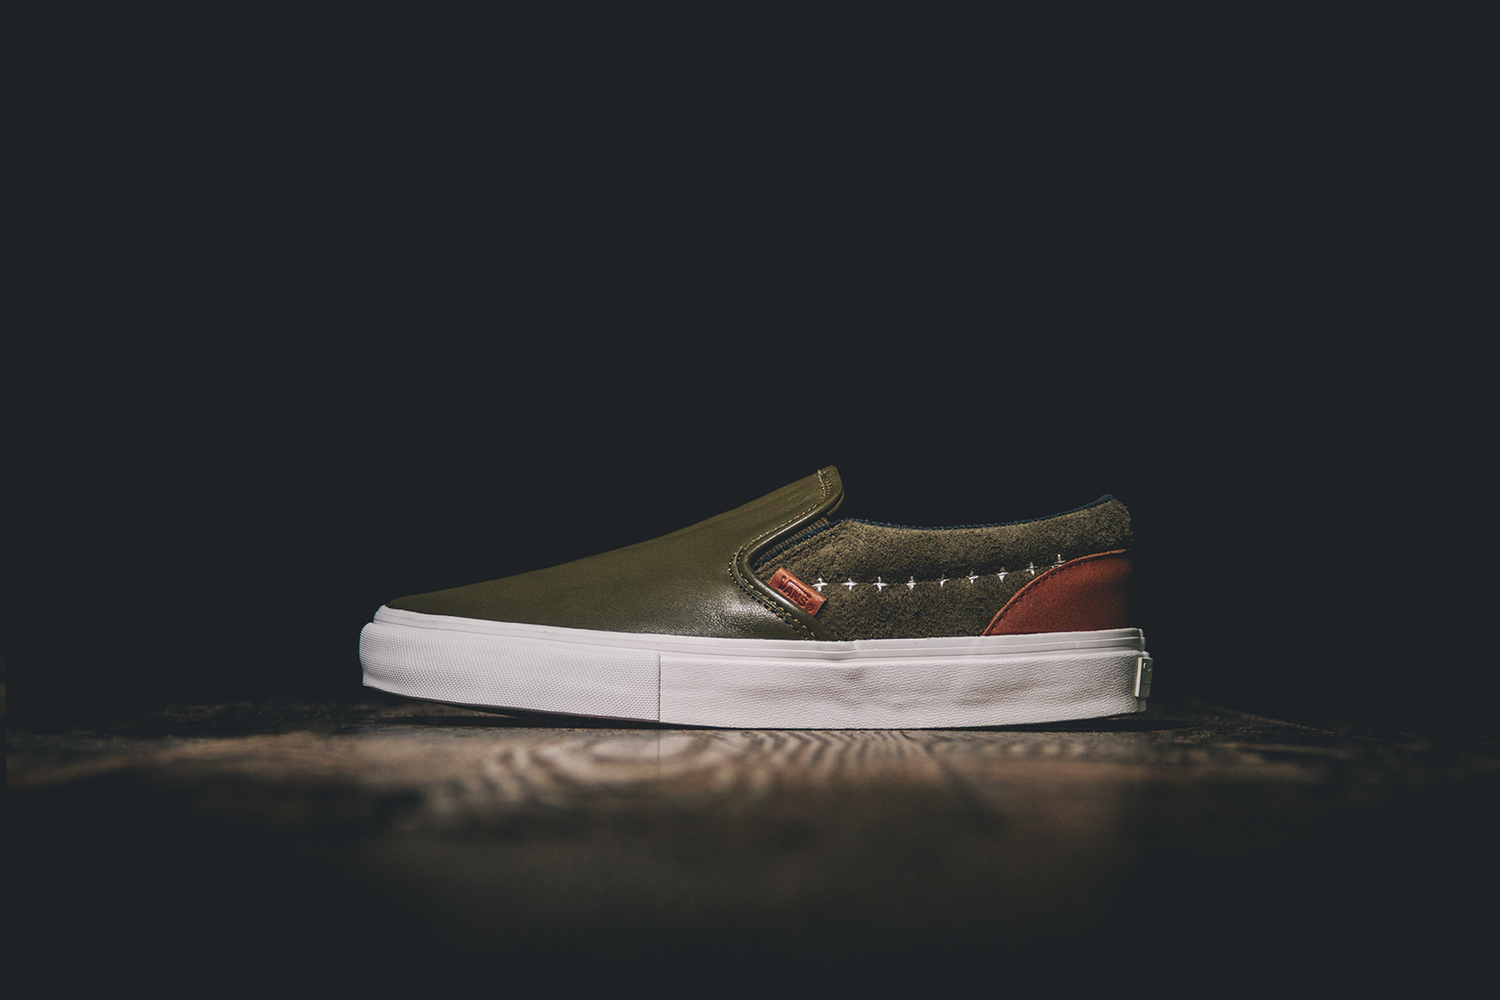 e27ca35a53 Wish x Vans Vault Sk8 Hi and Slip On LX